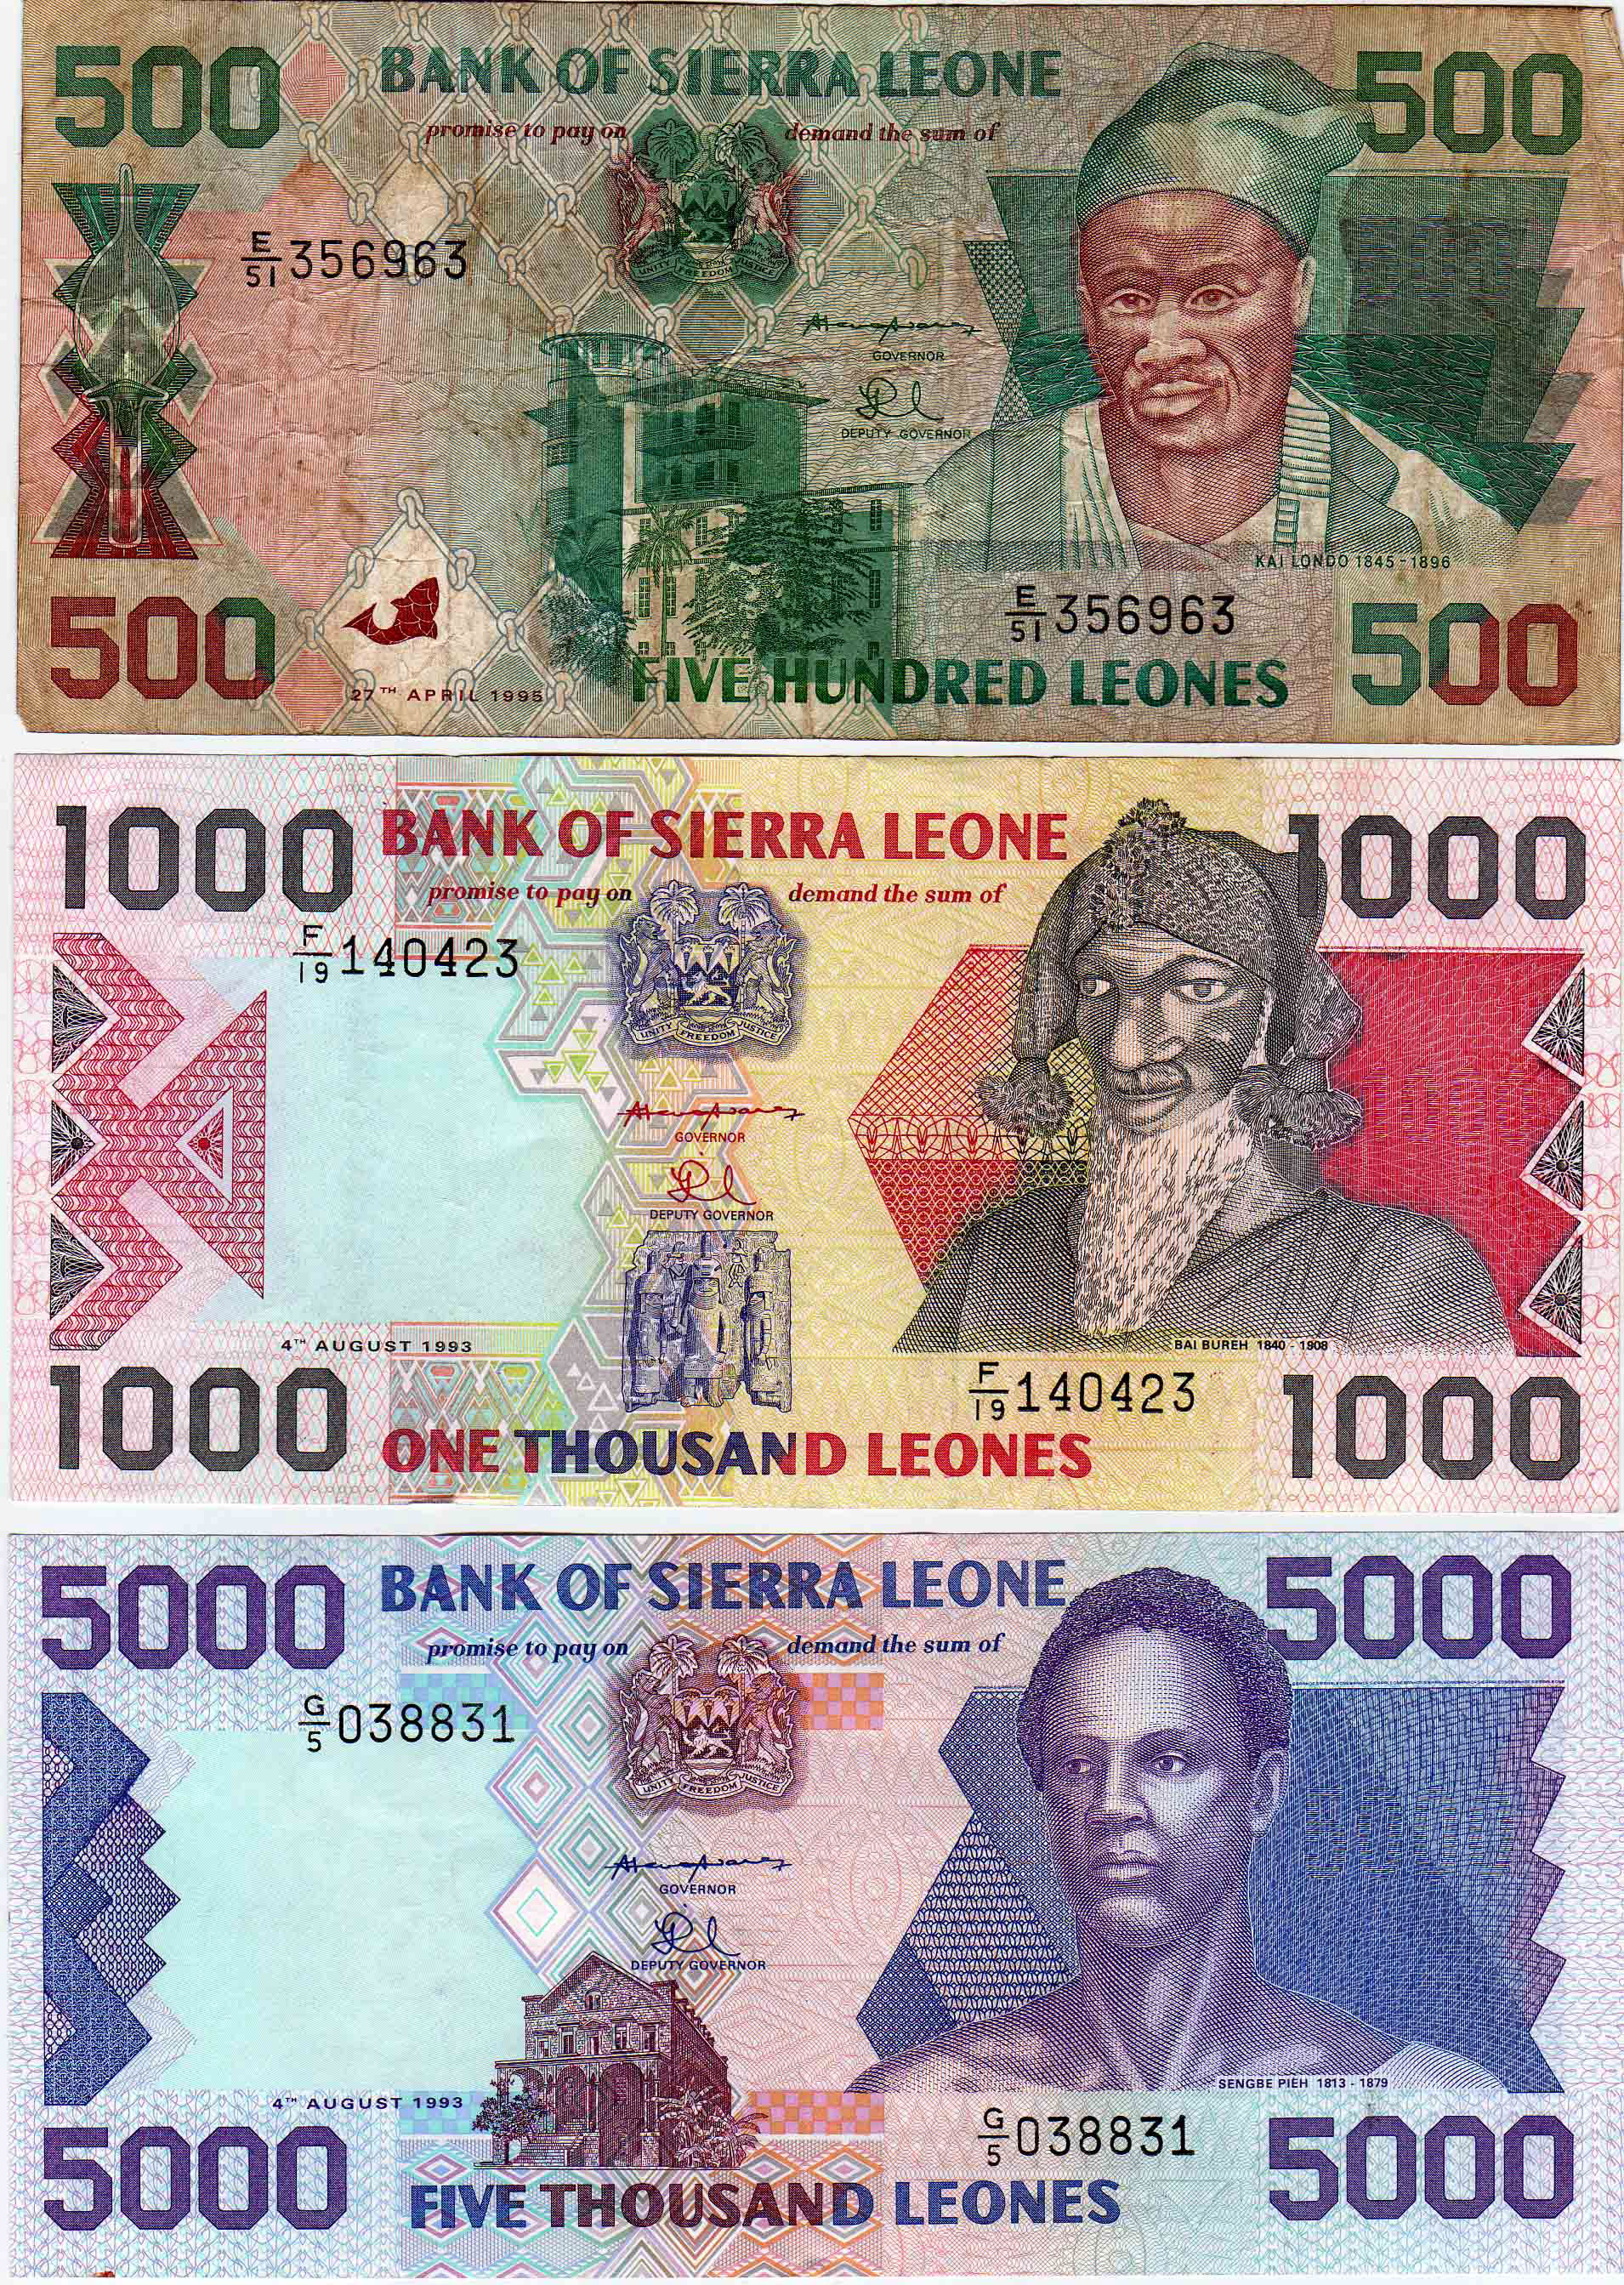 After President Momoh Was Toppled In A Coup 1991 The Nprc Military Junta Issued New Currency Honoring Heroes Sierra Leone S History